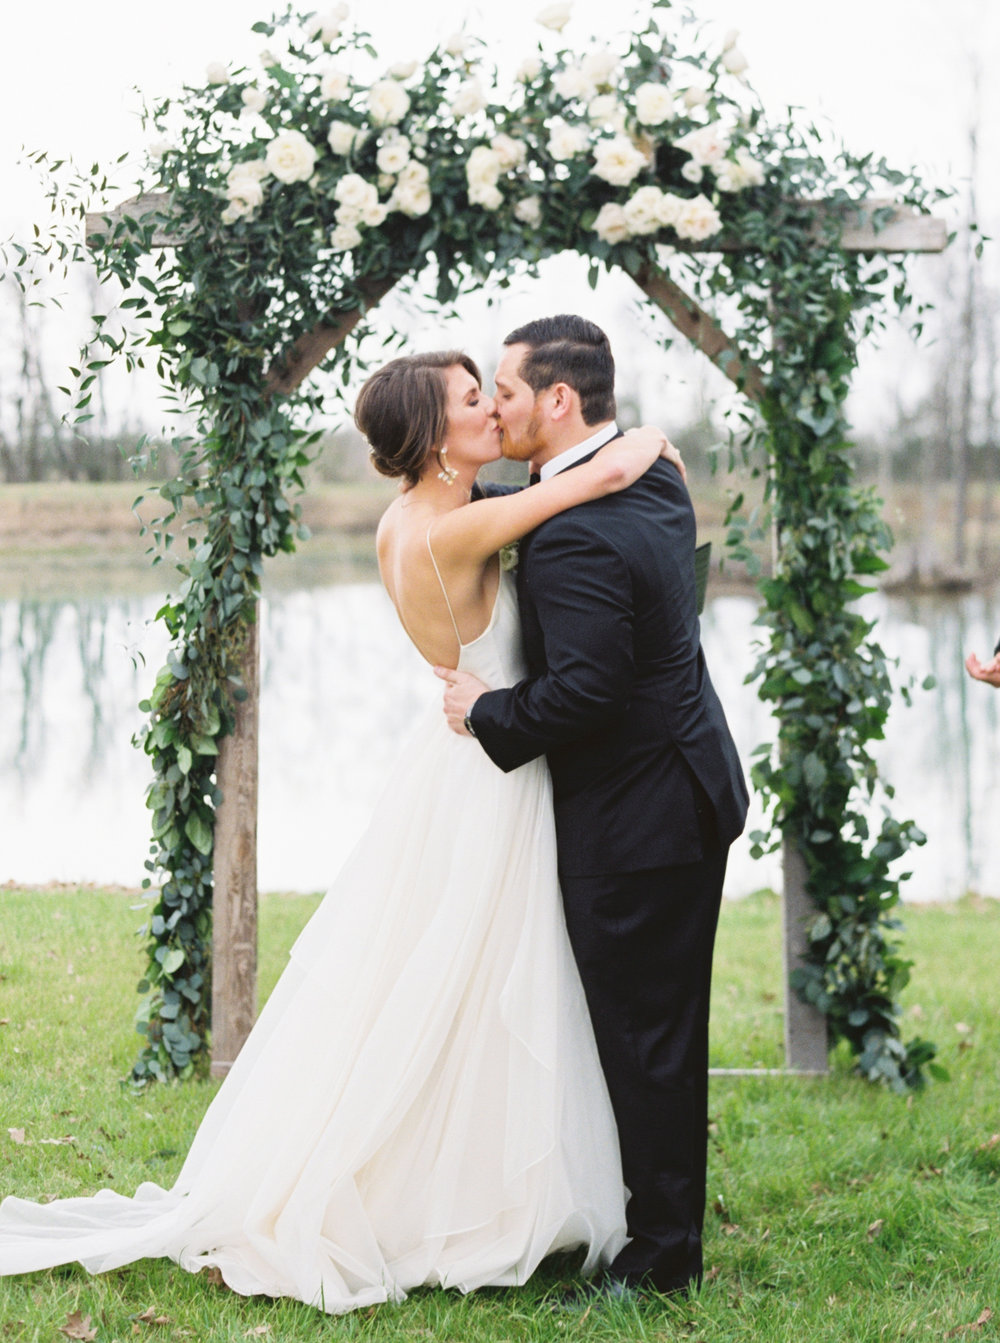 overcast wedding day, leanne marshall wedding gown, neutral wedding flowers, natural flowers, floral arch